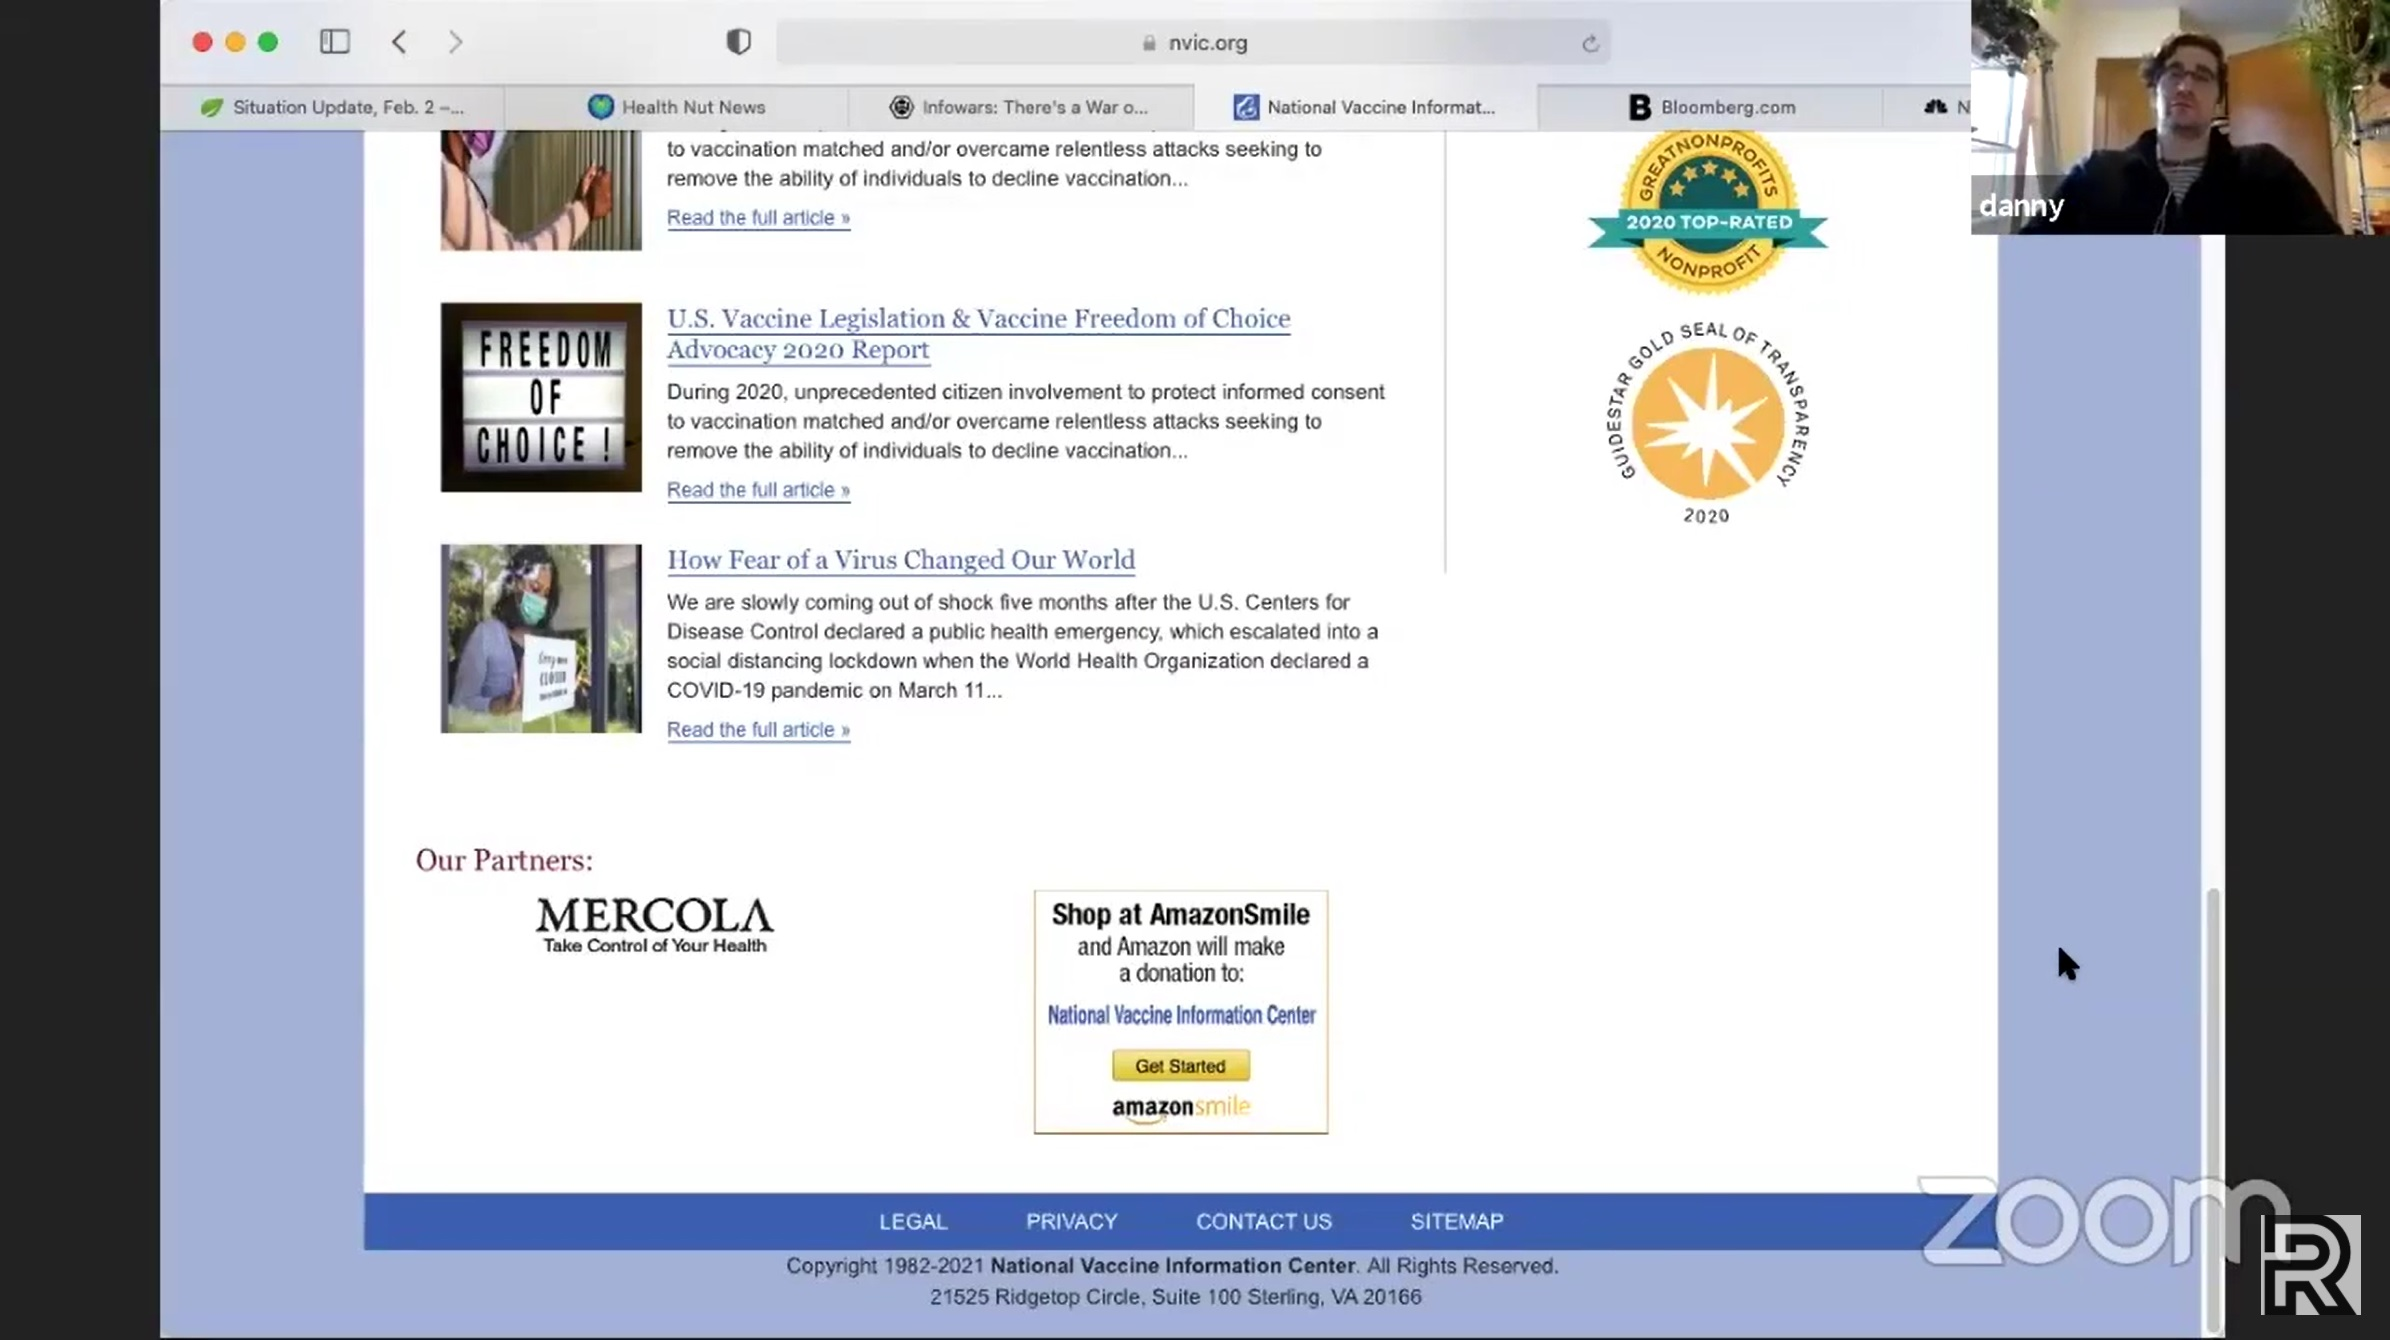 A screenshot of the bottom of the National Vaccine Information Center homepage.